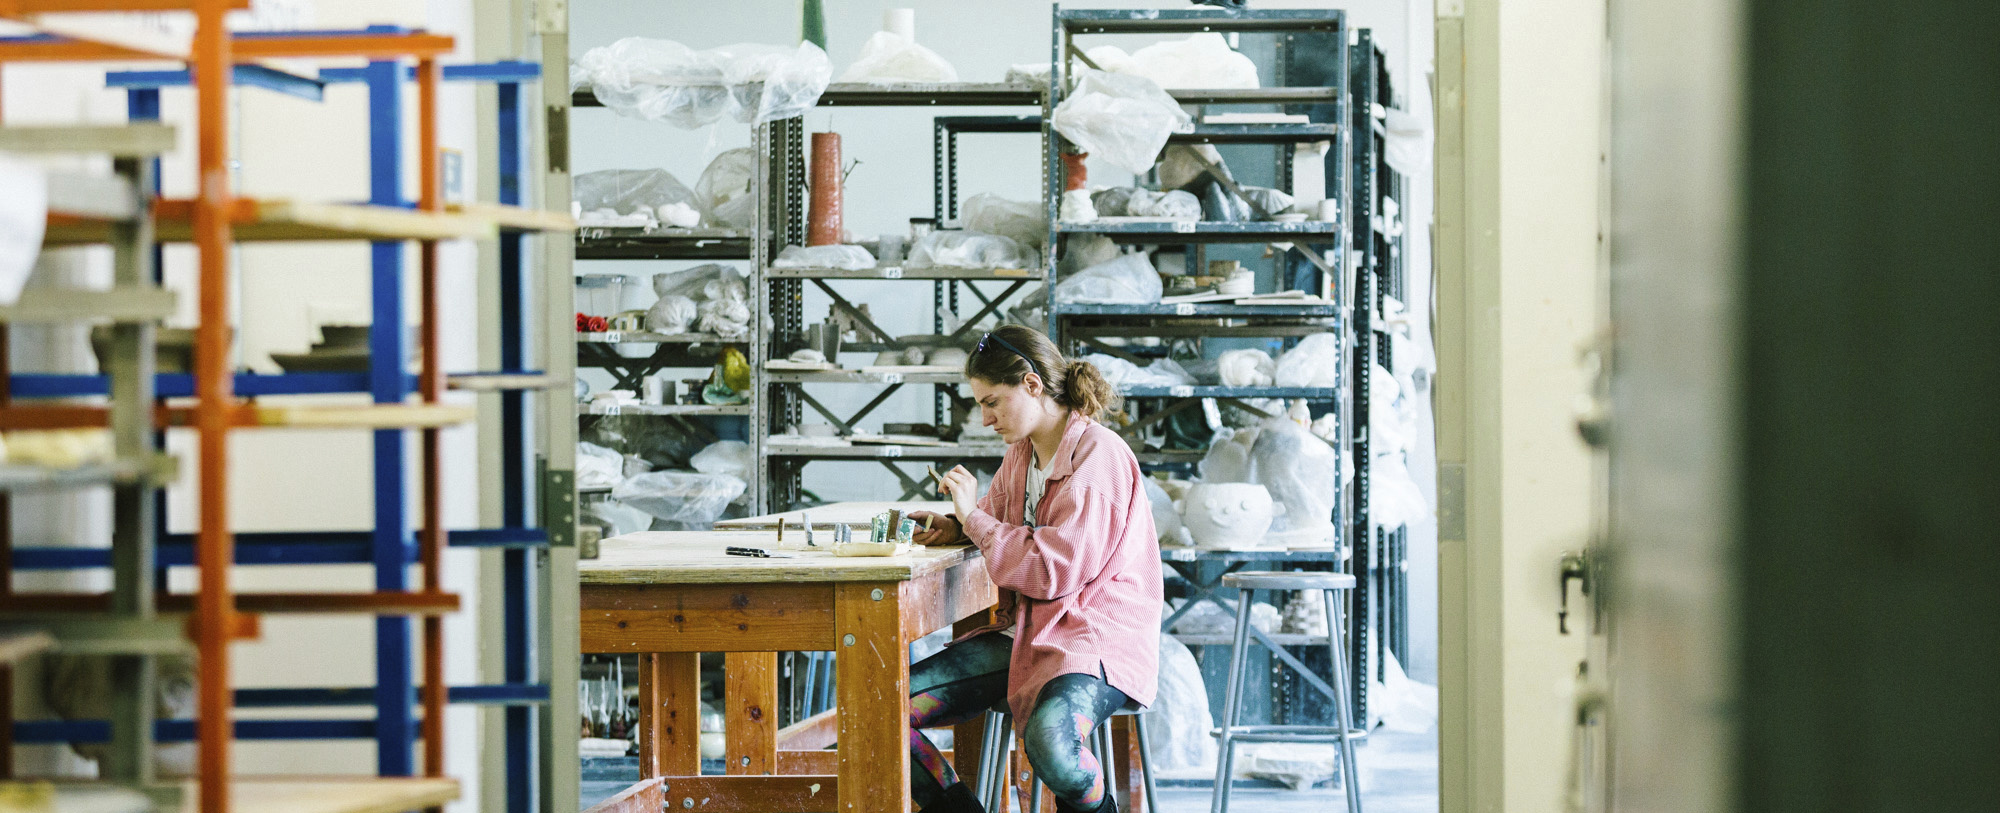 Student working in the studio